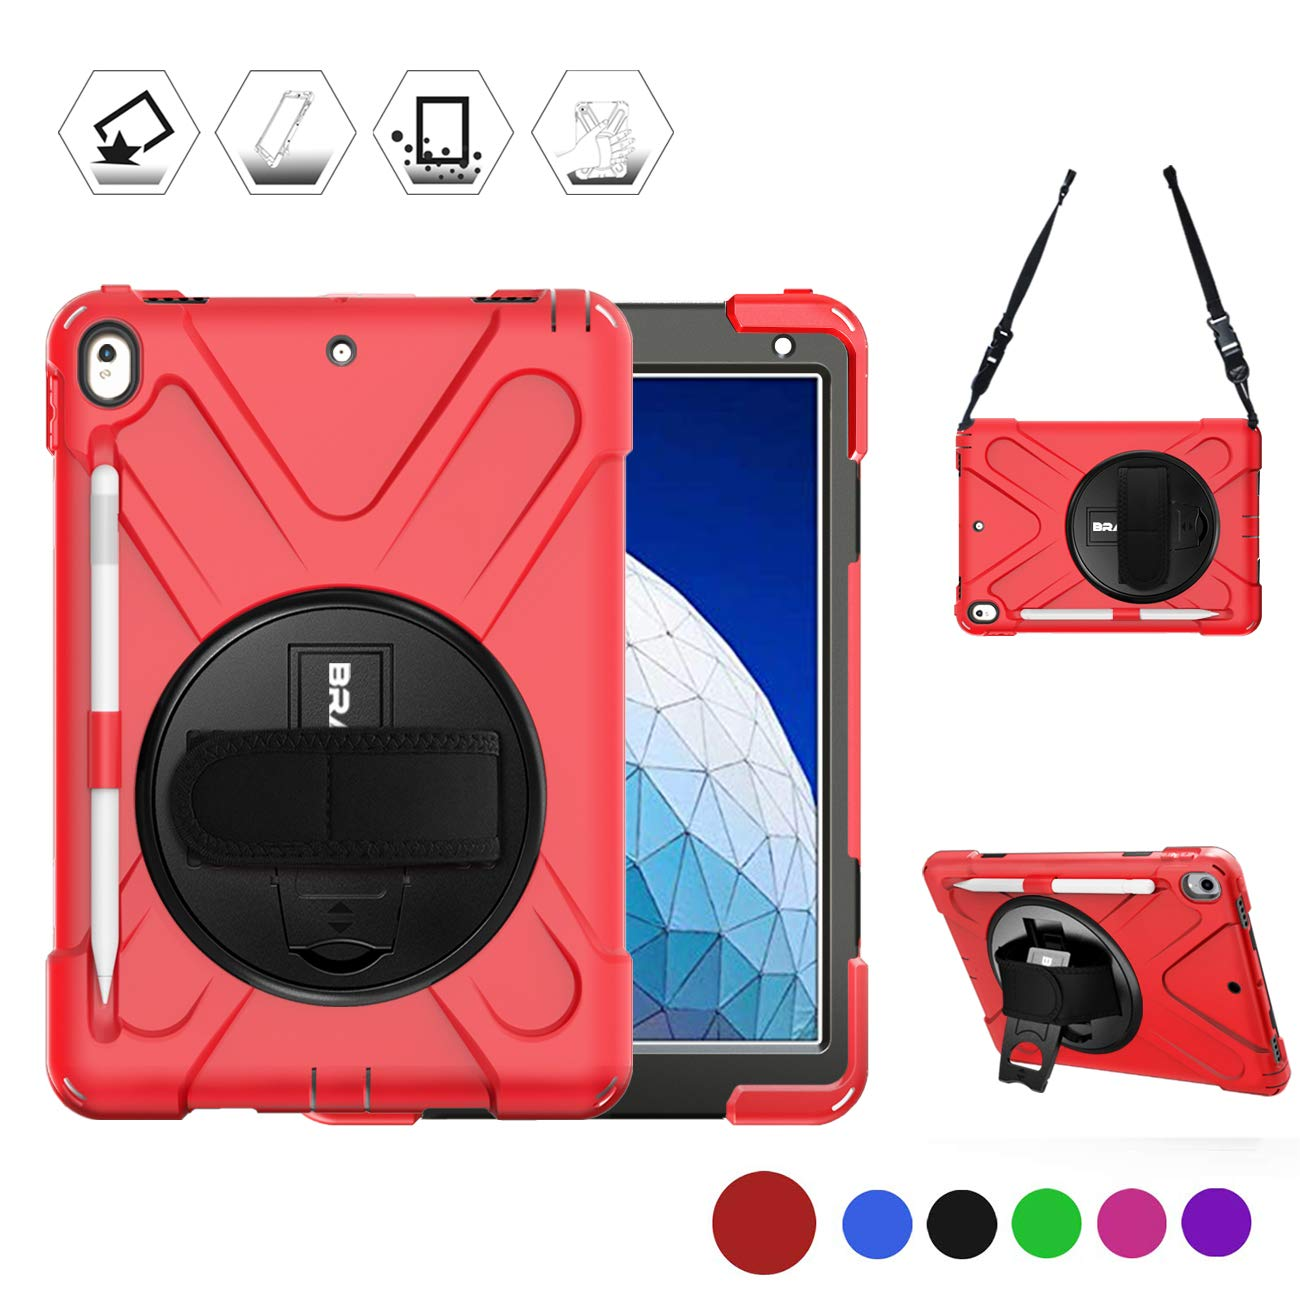 """BRAECN iPad Air 10.5"""" Case with Pencil Holder, Kickstand/Hand Strap & Shoulder Strap,Heavy Duty Protection Childproof Silicone Kids Case for iPad AIir 3rd Gen 2019 A2152 /iPad Pro 10.5 A1709/A1701-Red"""